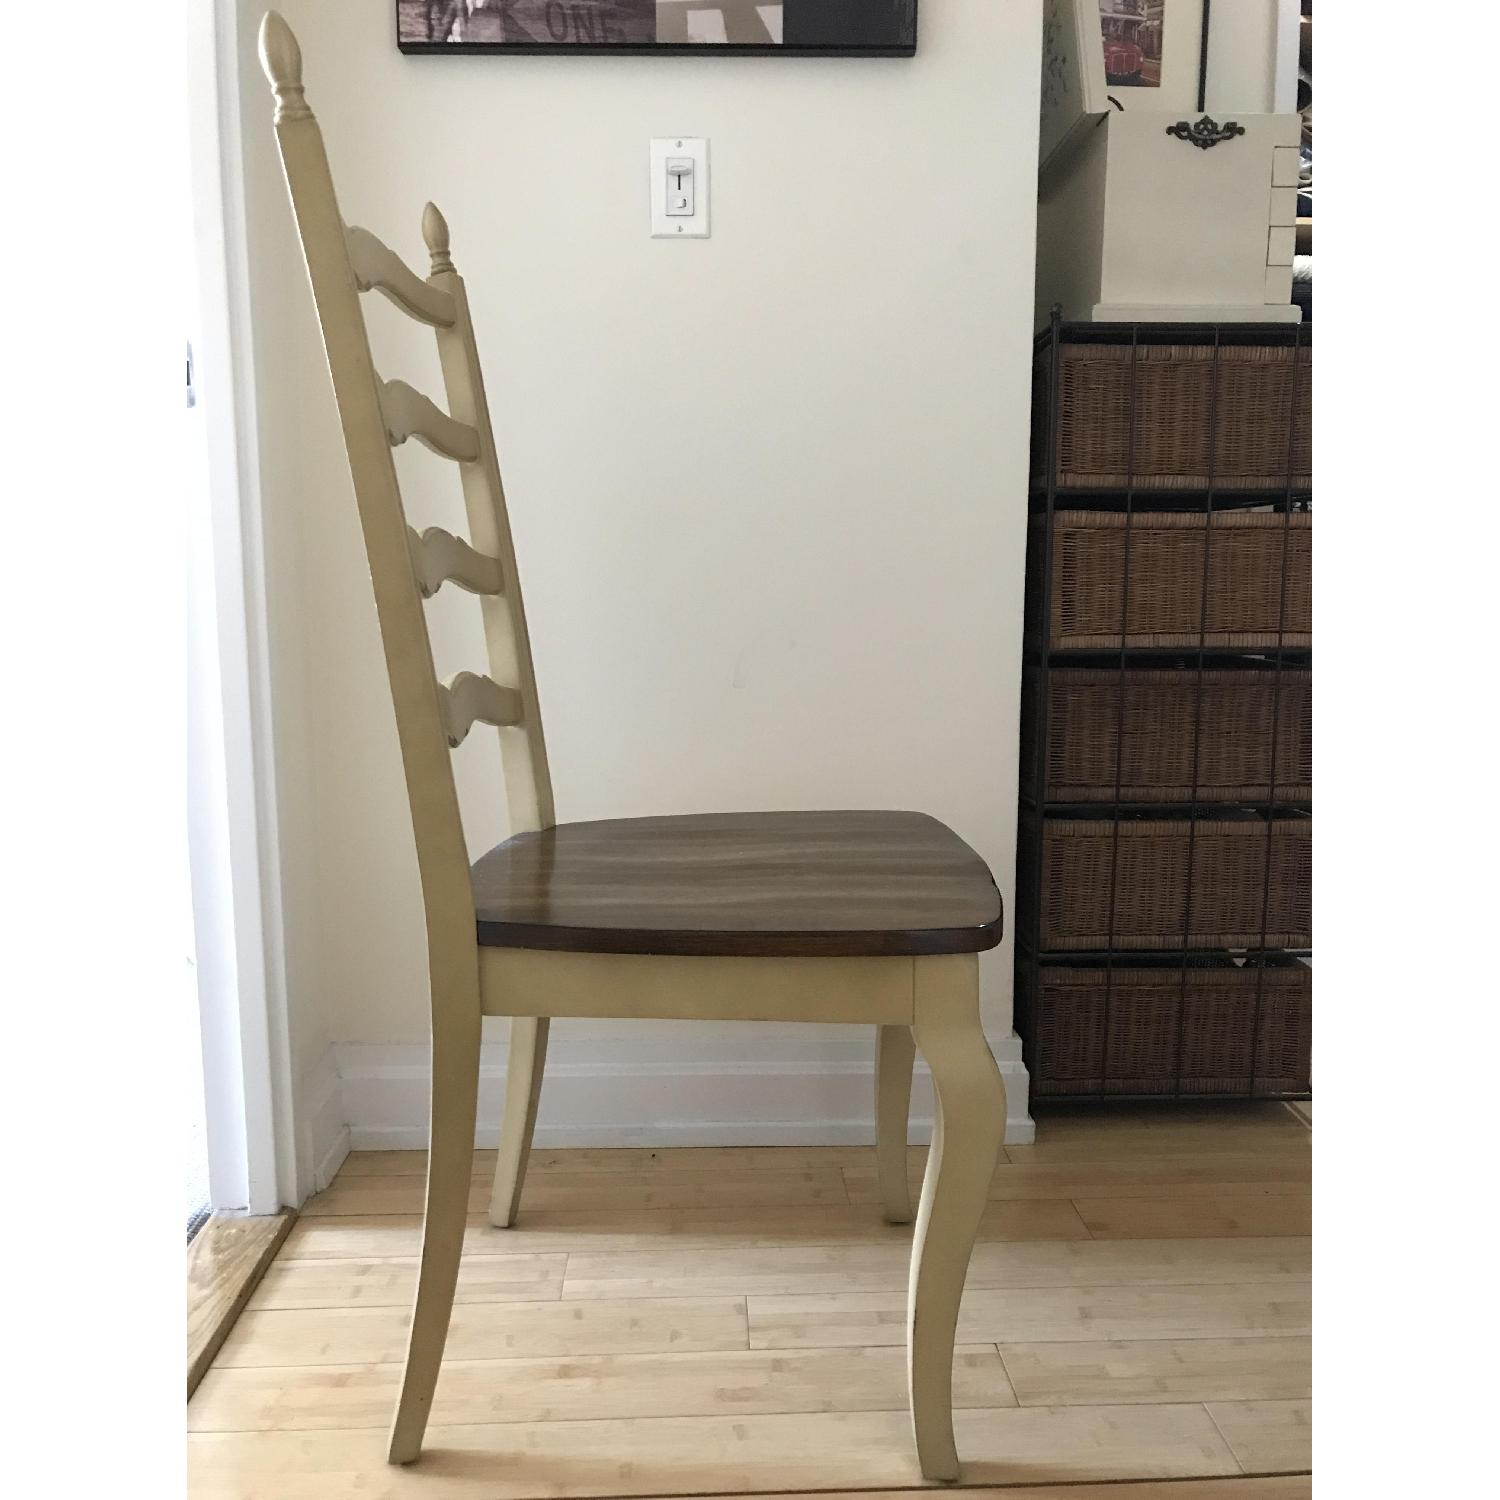 Pier 1 Francesca Antique Ivory Dining Chair-1